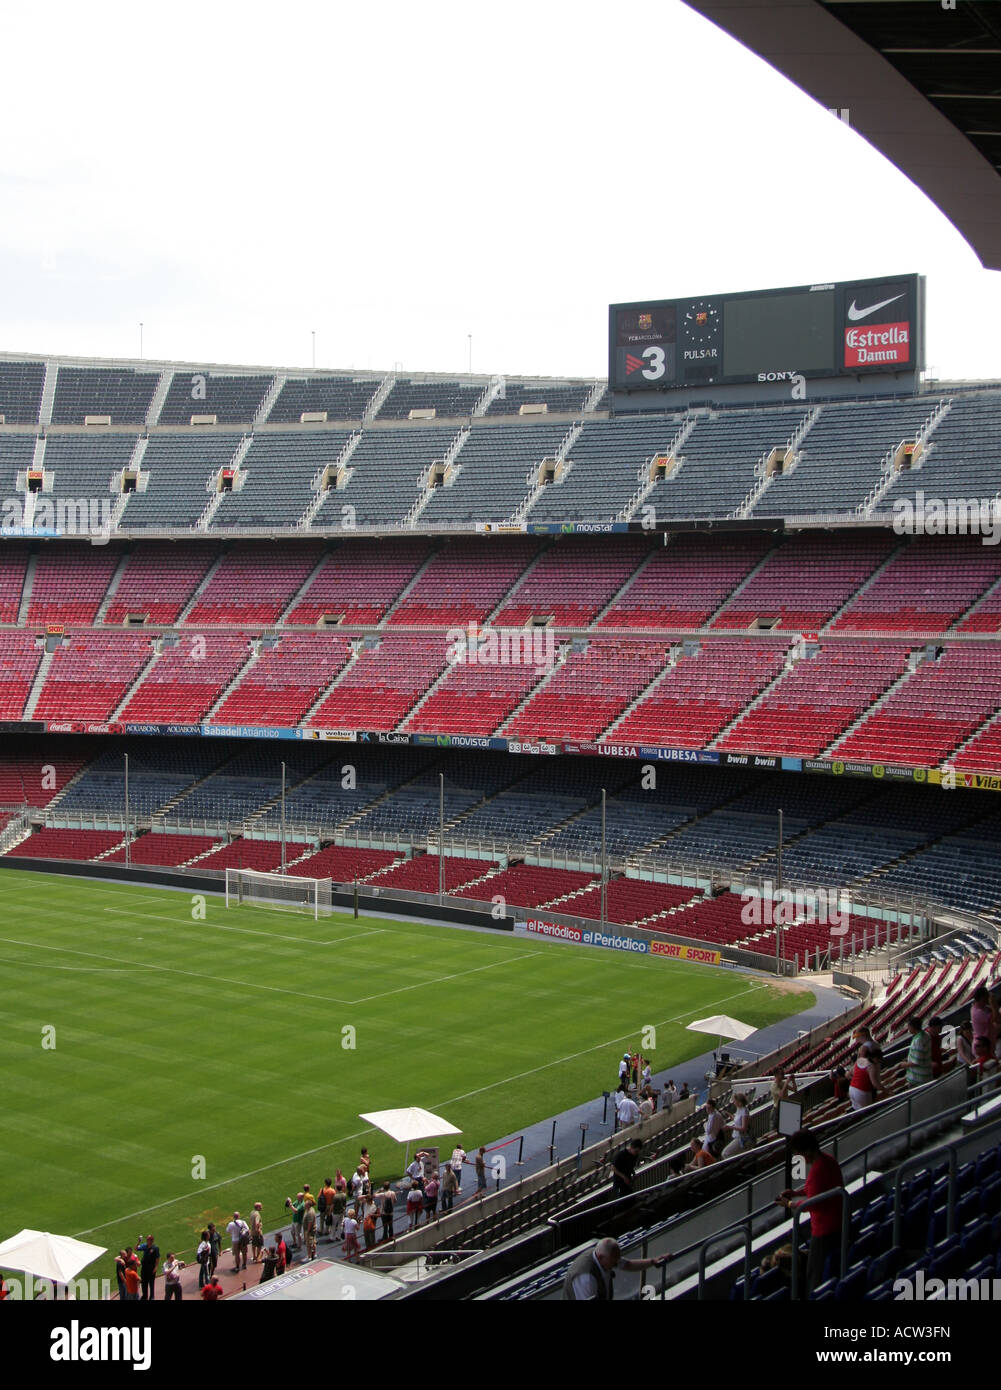 nou camp stadium in barcelona with a 90 000 capacity home to fc stock photo alamy https www alamy com stock photo nou camp stadium in barcelona with a 90000 capacity home to fc barcelona 13231976 html